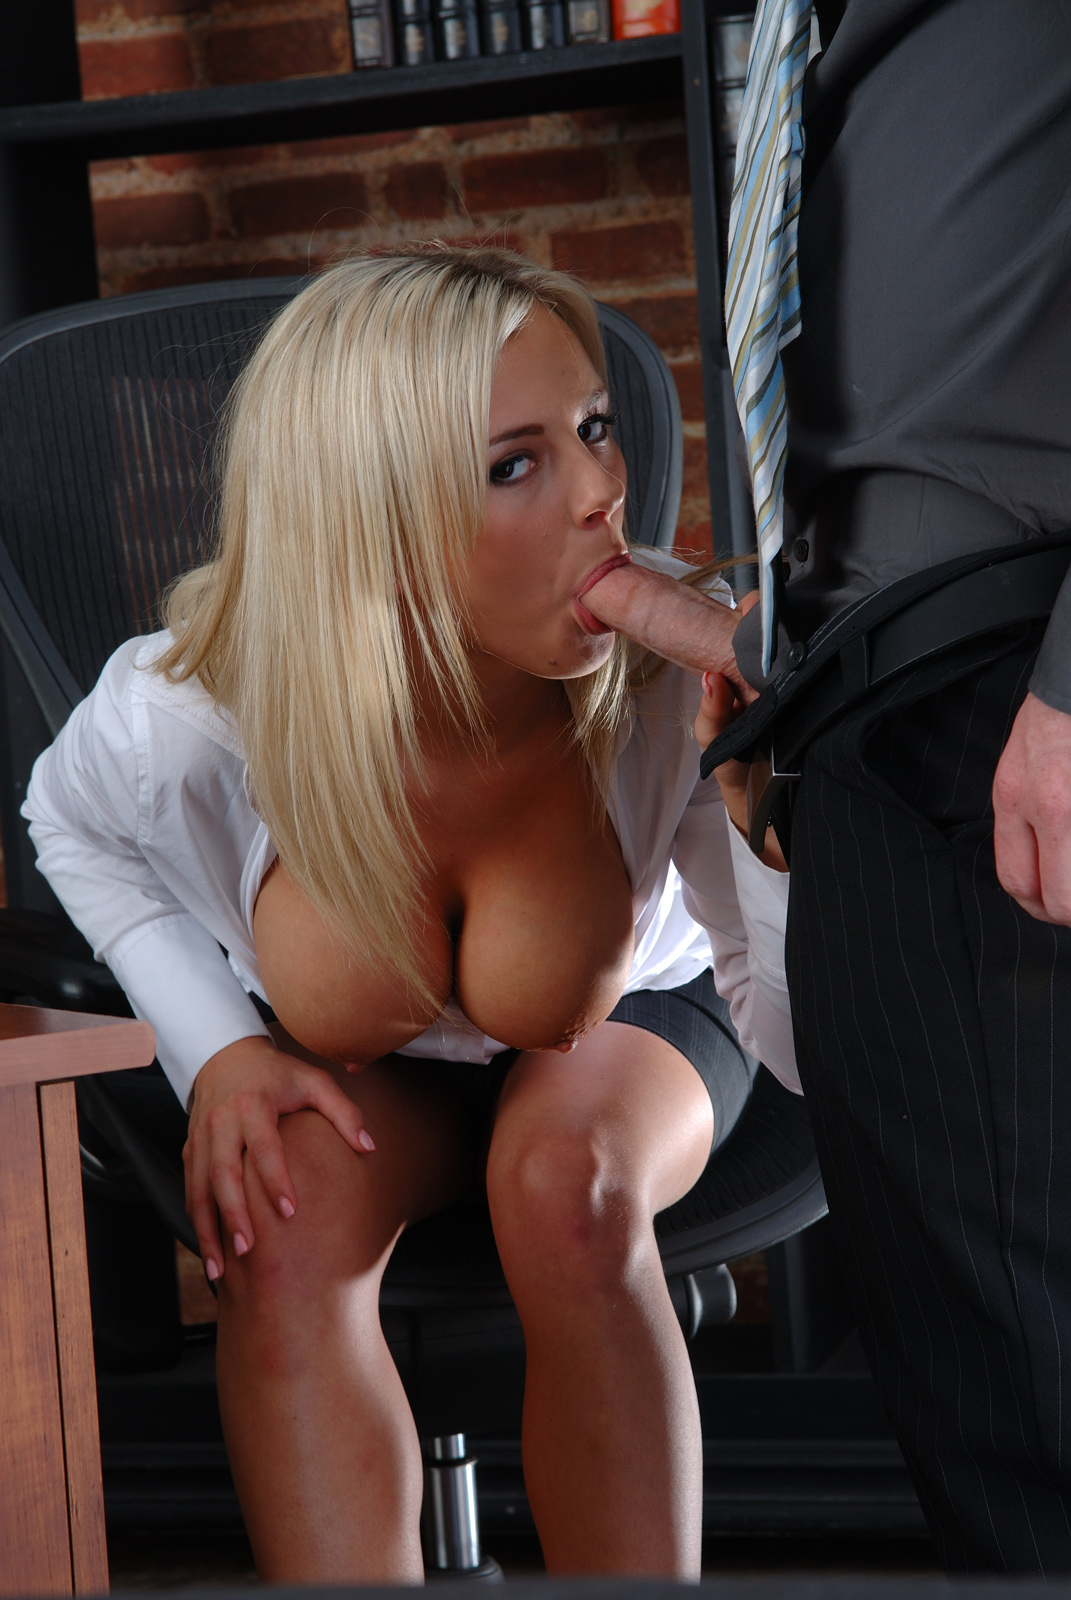 Sucking cock at work opinion